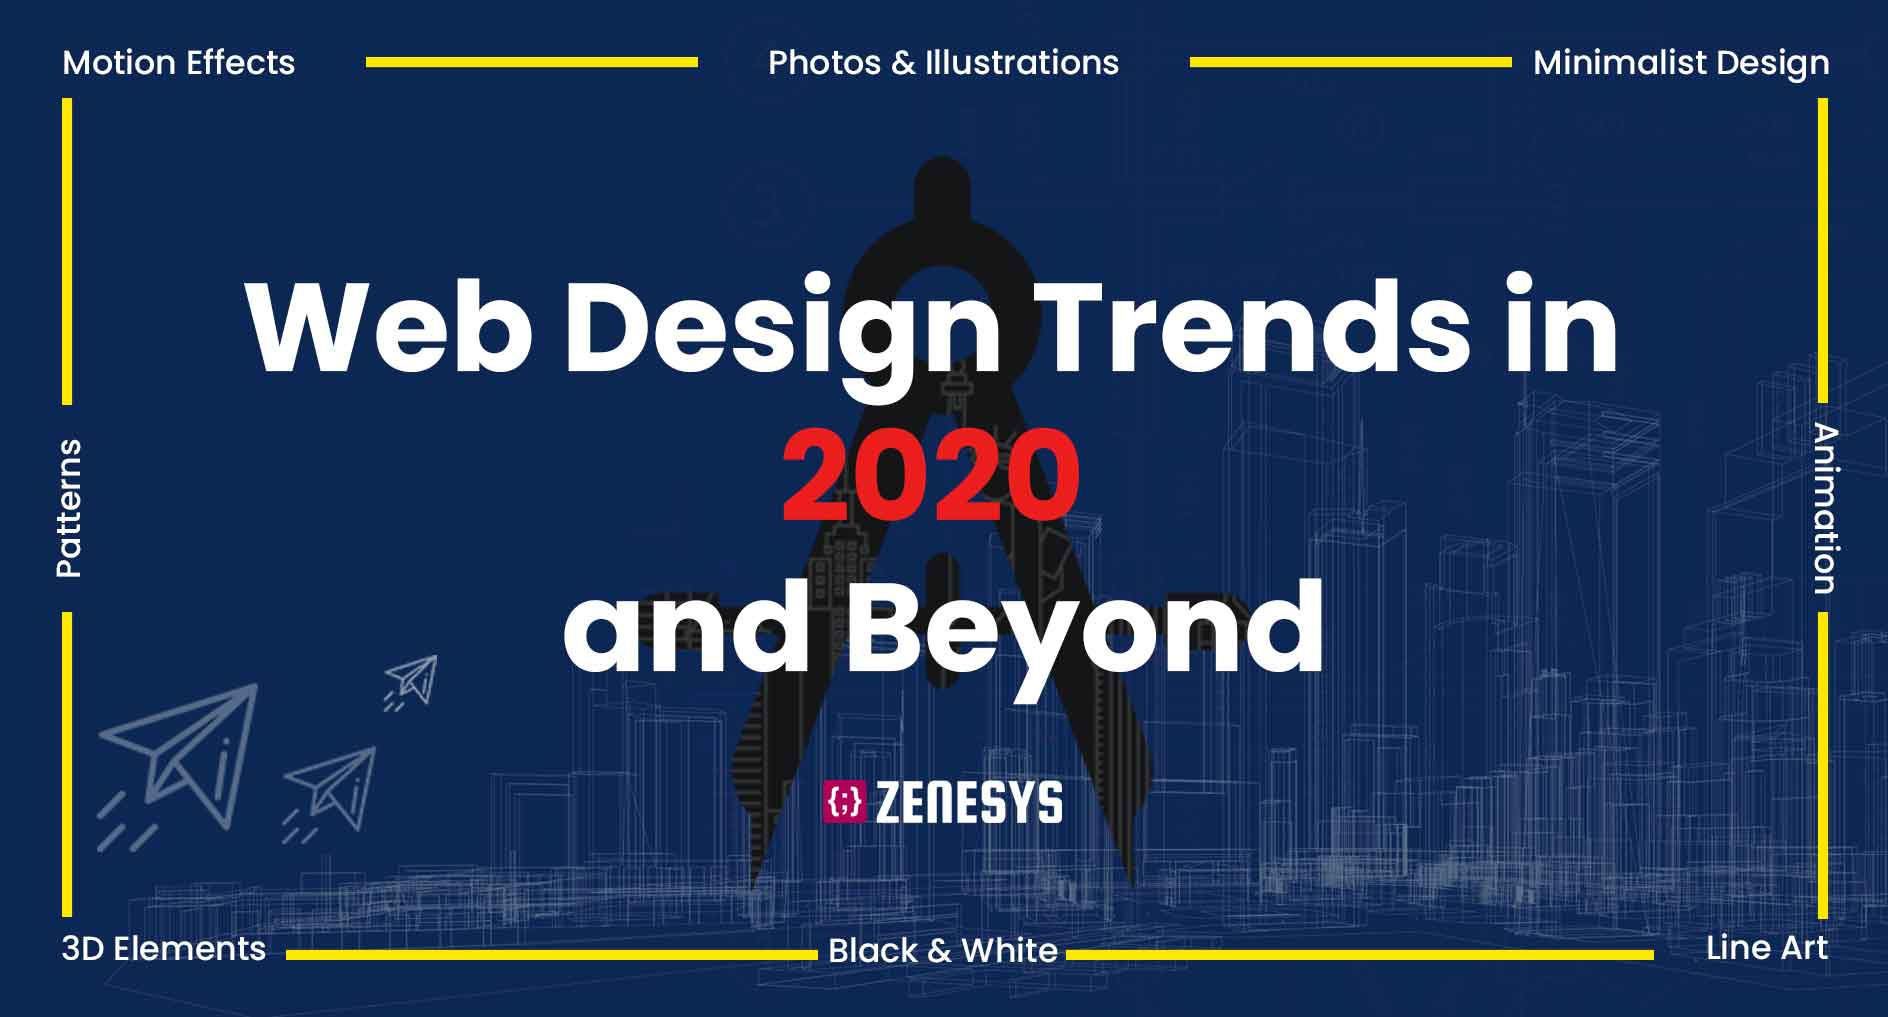 Top 10 Web Design Trends in 2020 and Beyond